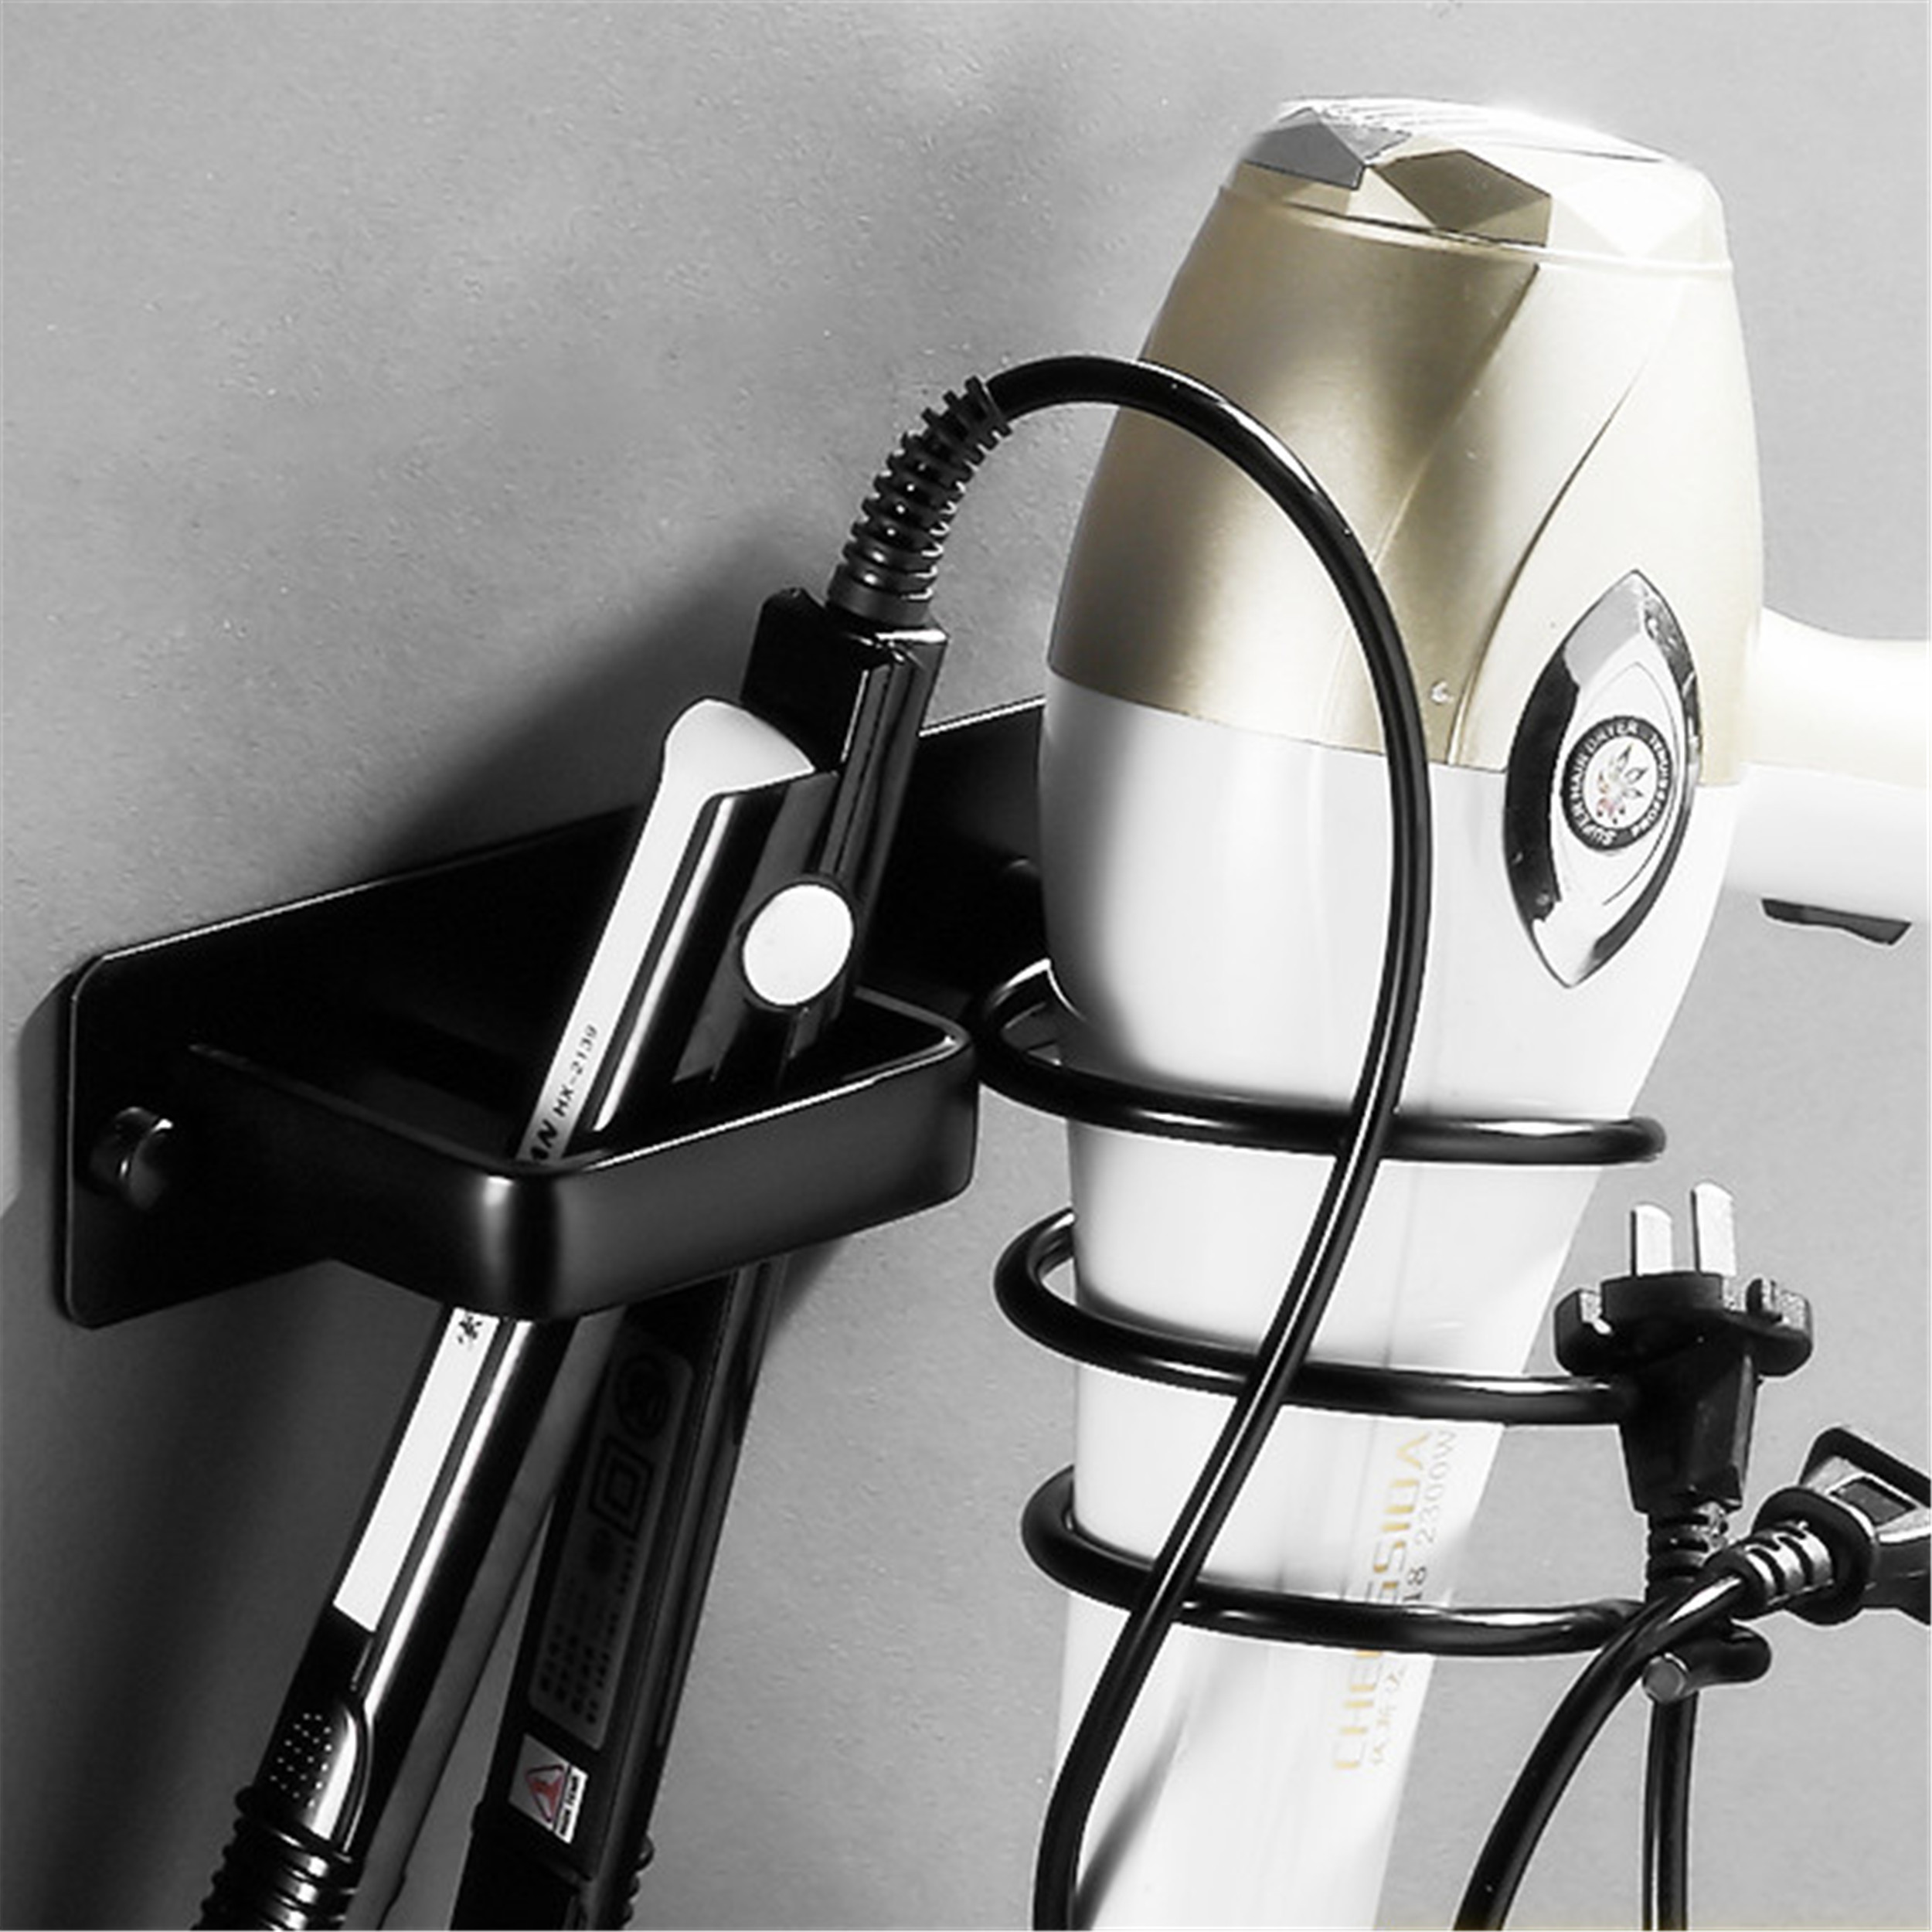 Wall Mounted Bathroom Black Hair Dryer Holder Space Aluminum Hair Straightener Holder Storage Bathroom Shelf Accessories 1